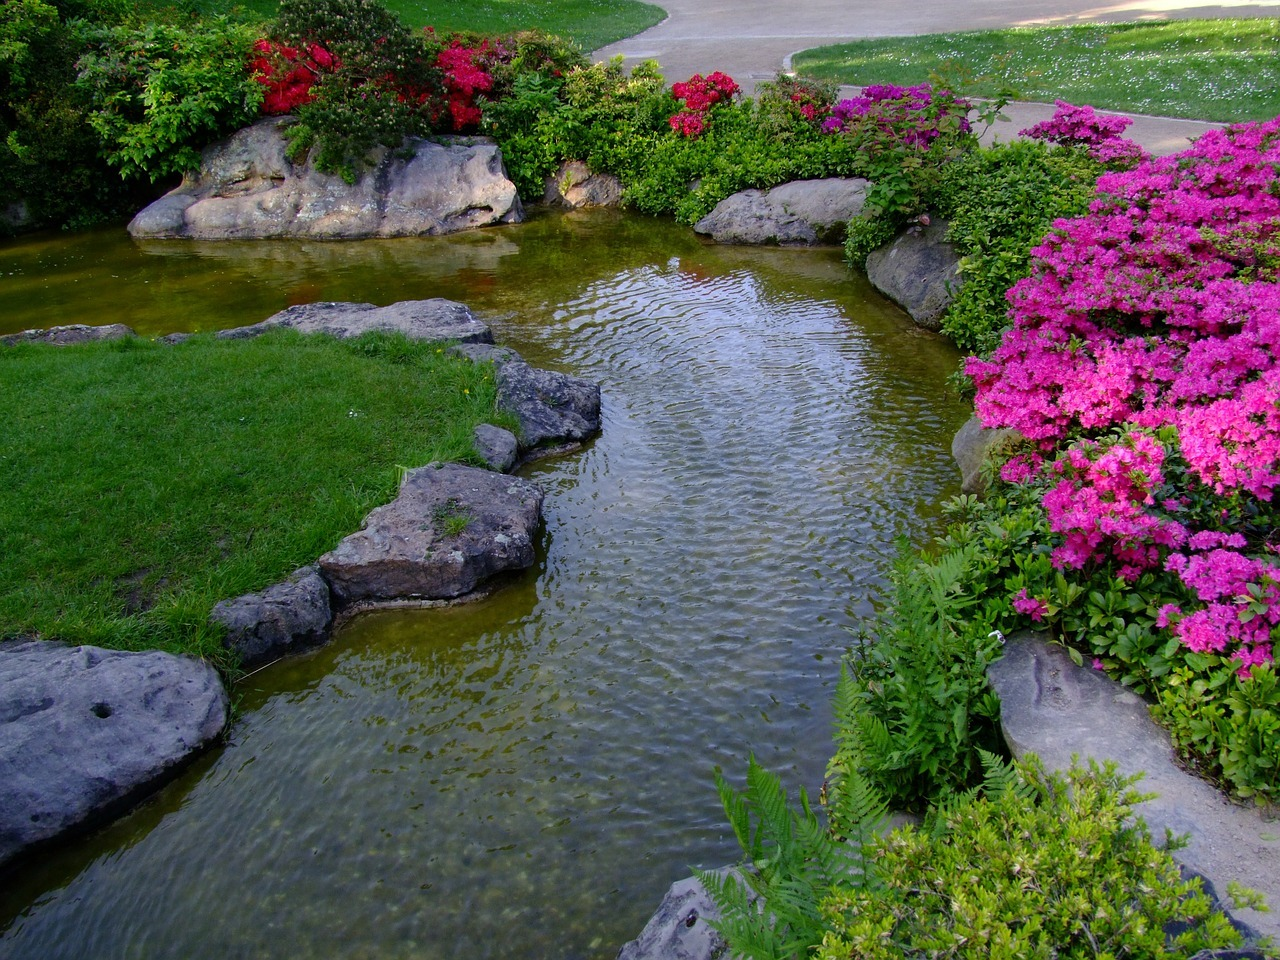 Key Elements of a Japanese Garden